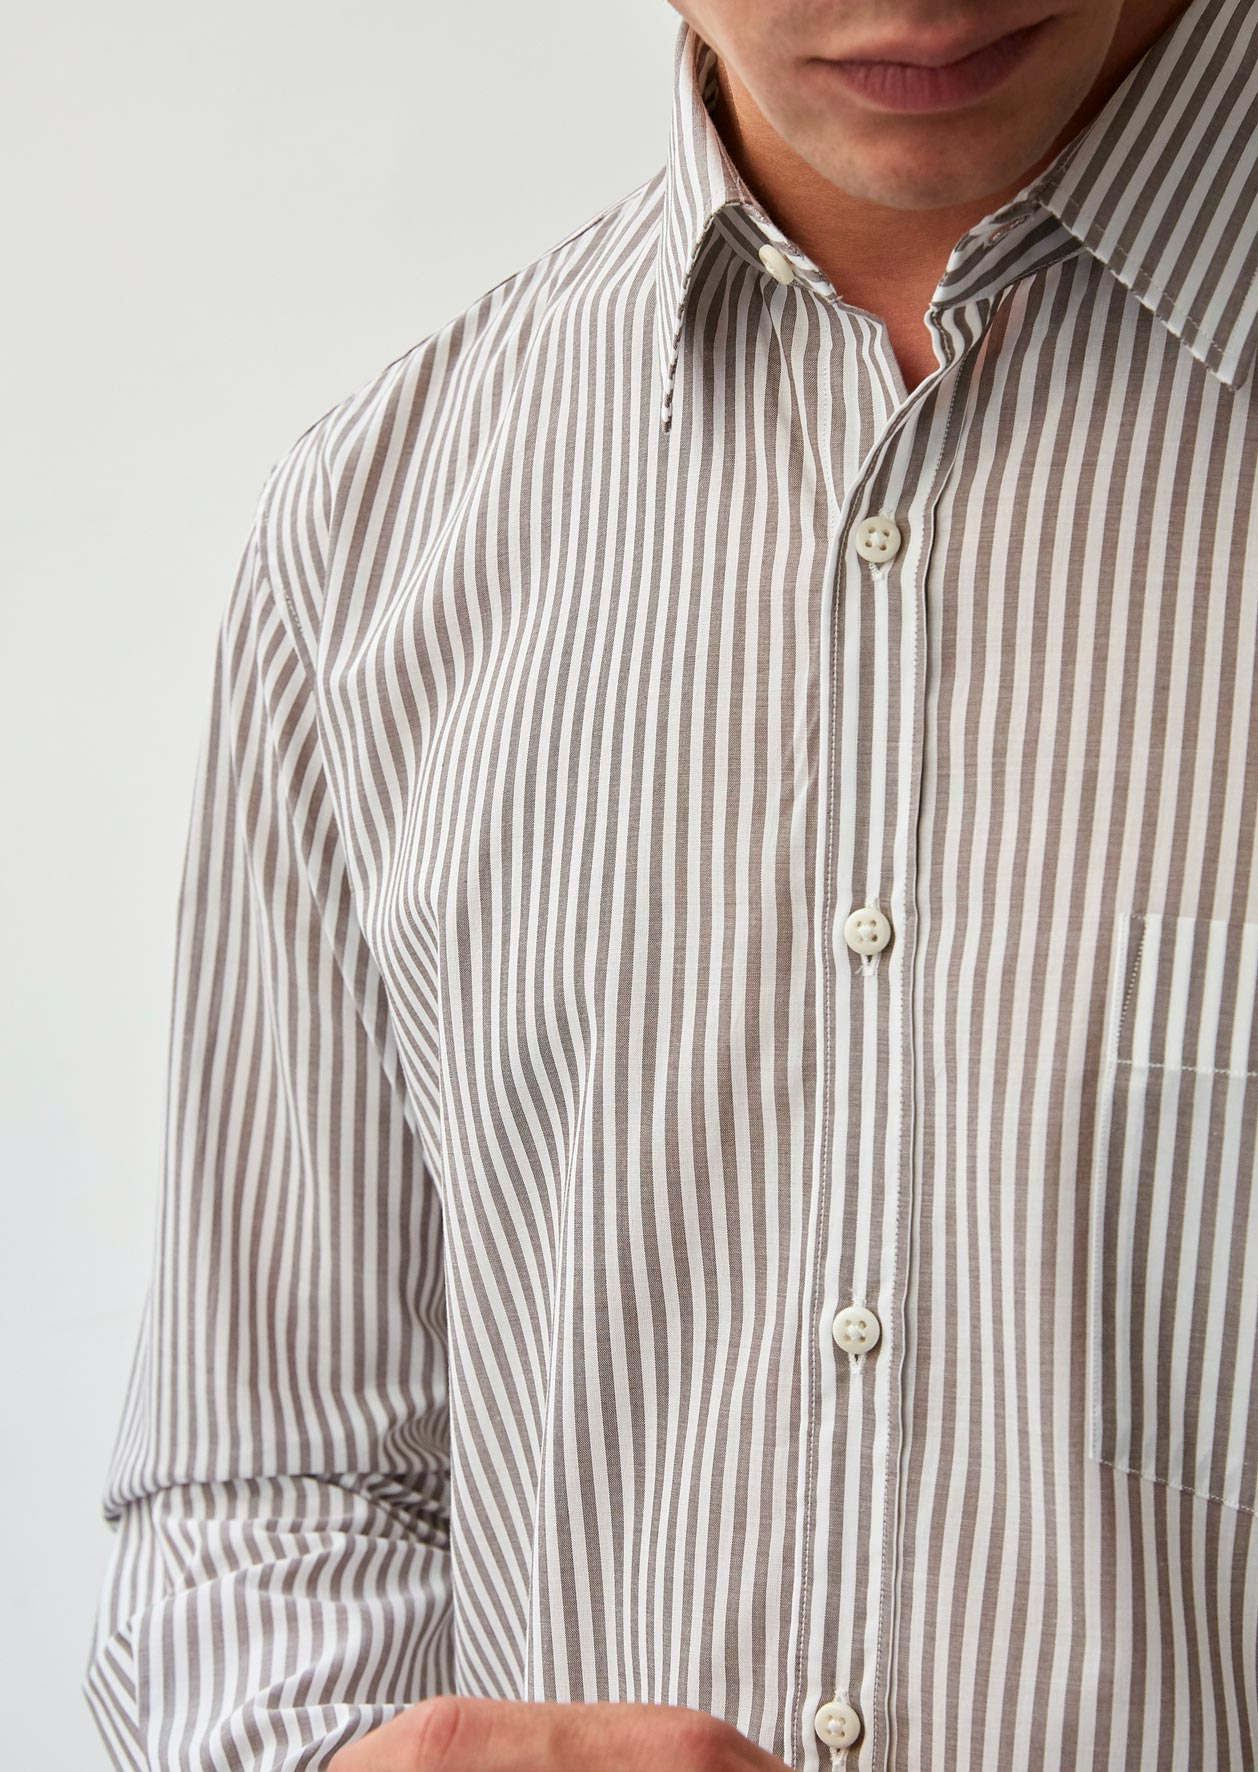 Essential shirt - Japanese cotton voile - Brown stripes - De Bonne Facture